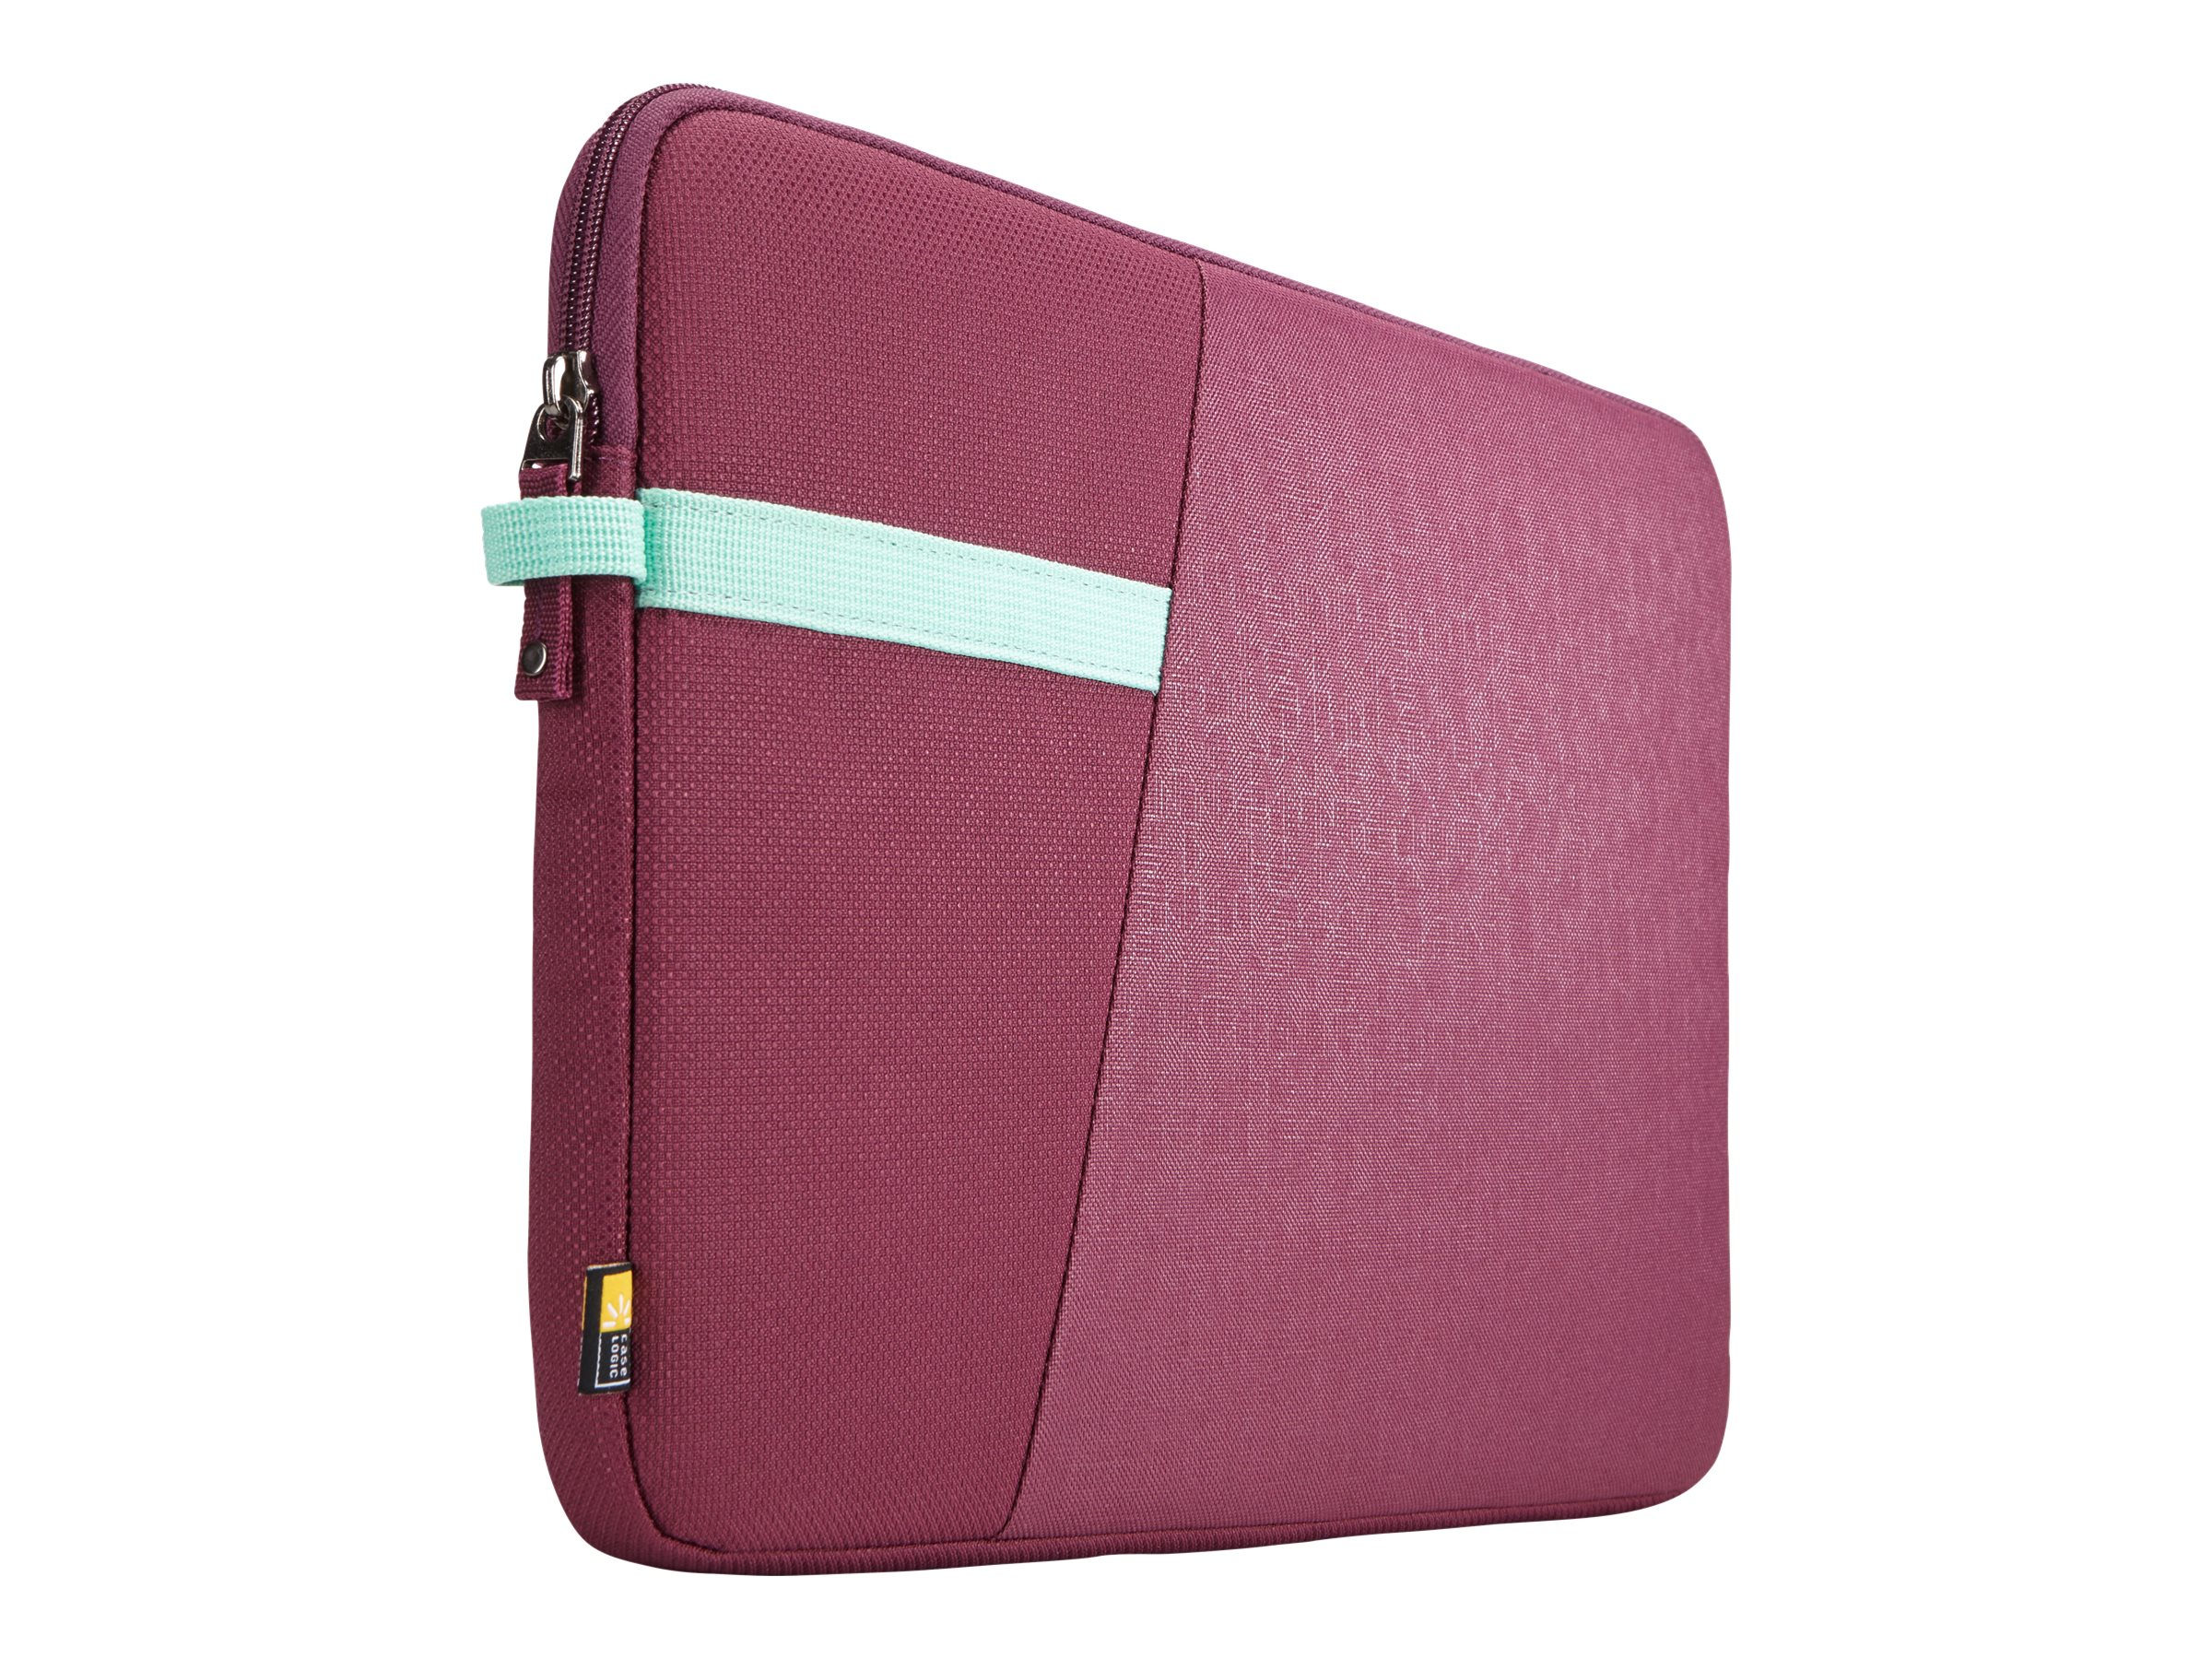 Case Logic Ibira 11 Laptop Sleeve, Acai, IBRS111ACAI